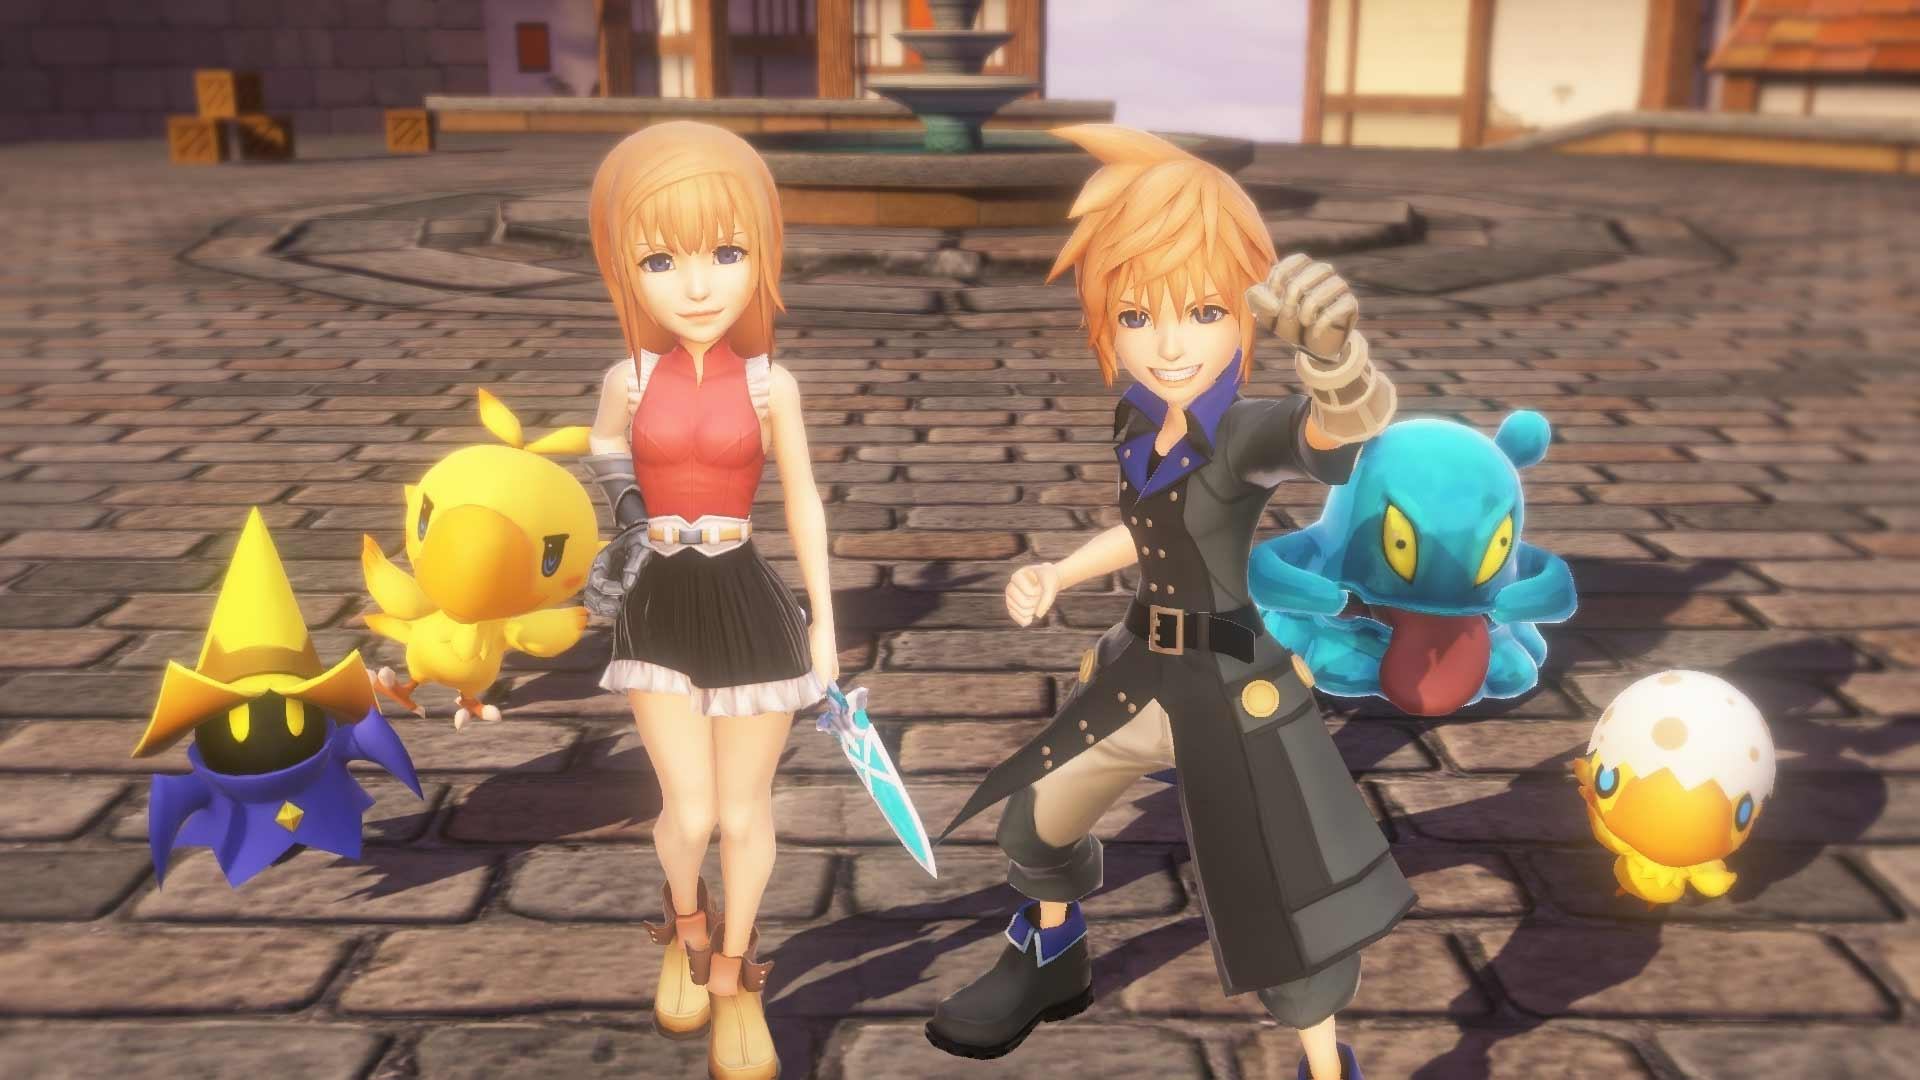 World of Final Fantasy is heading to PC screenshot